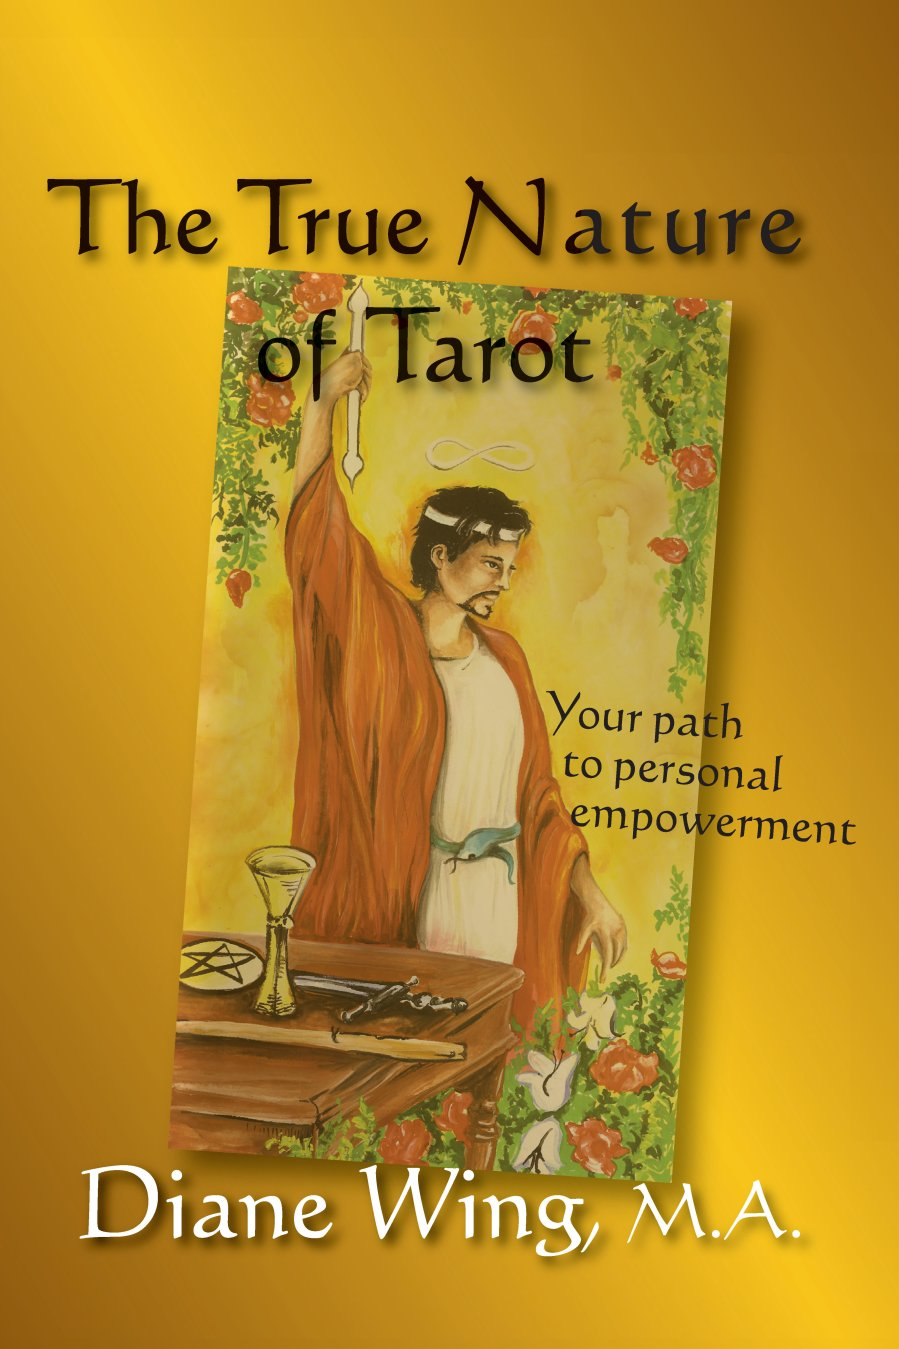 The True Nature of Tarot: Your Path to Personal Empowerment 978-1-61599-021-4